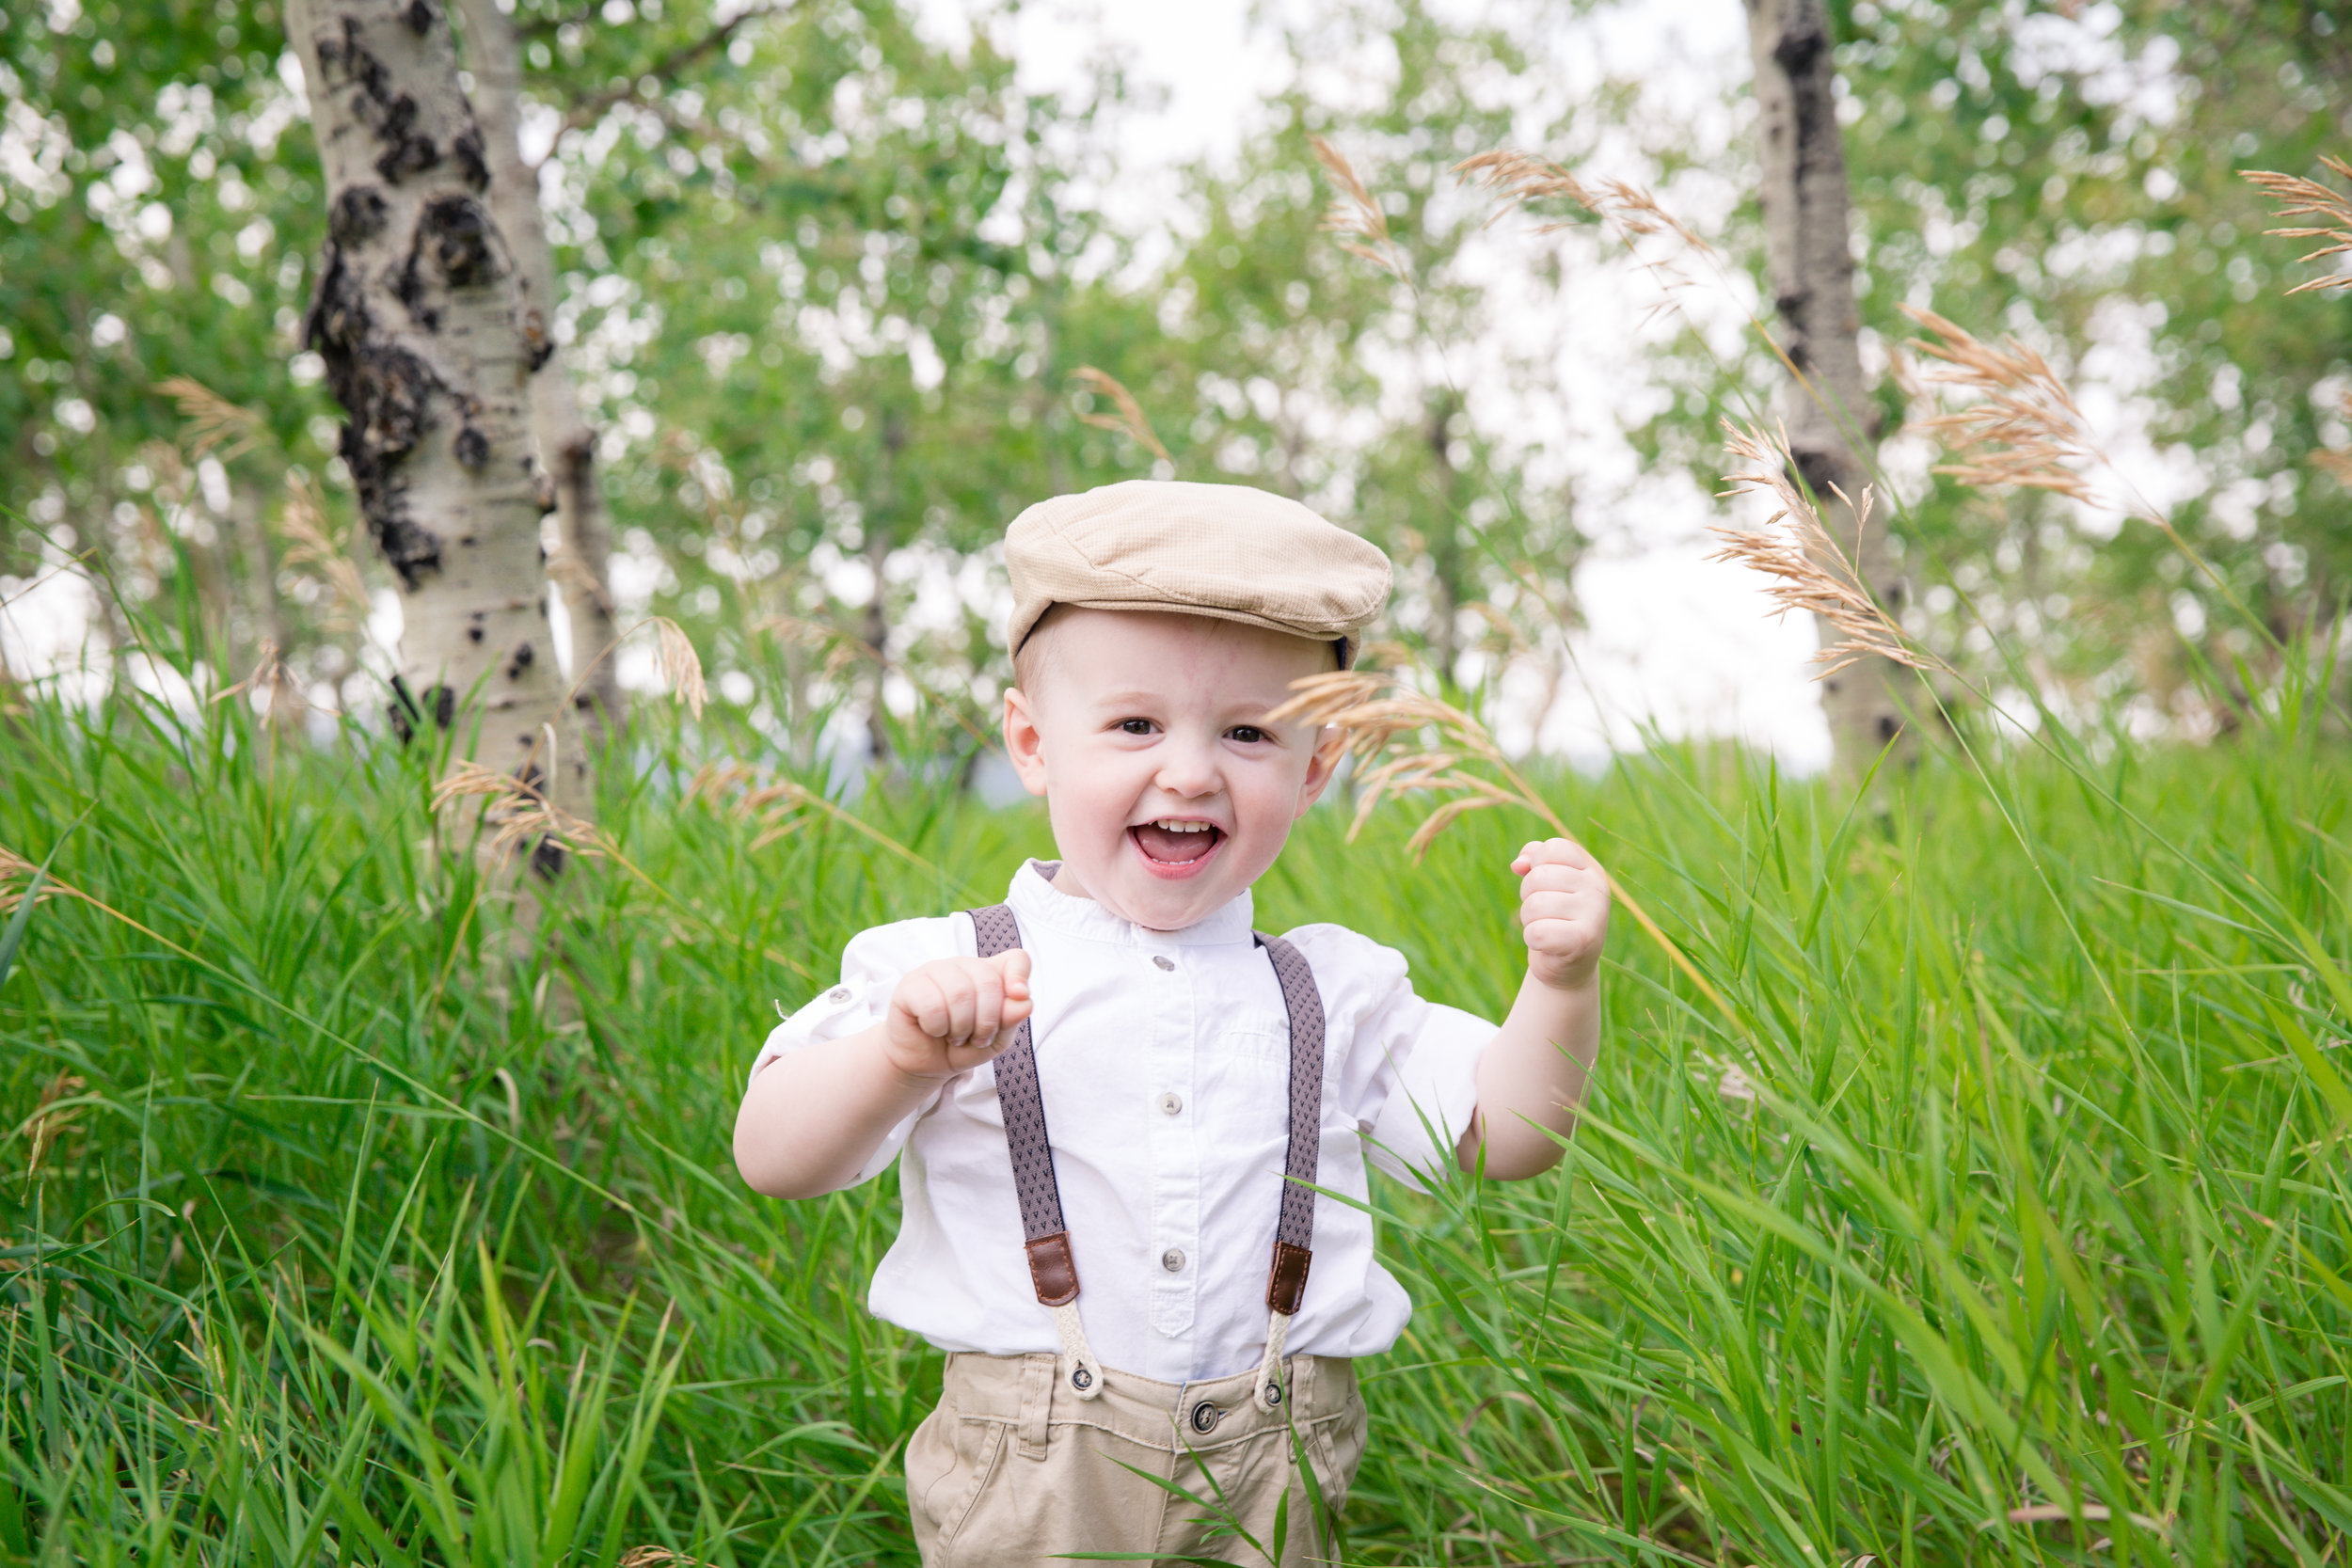 Little boy dressed in an old style clothing standing in tall grass and smiling. Calgary child photographer. Milashka Photography